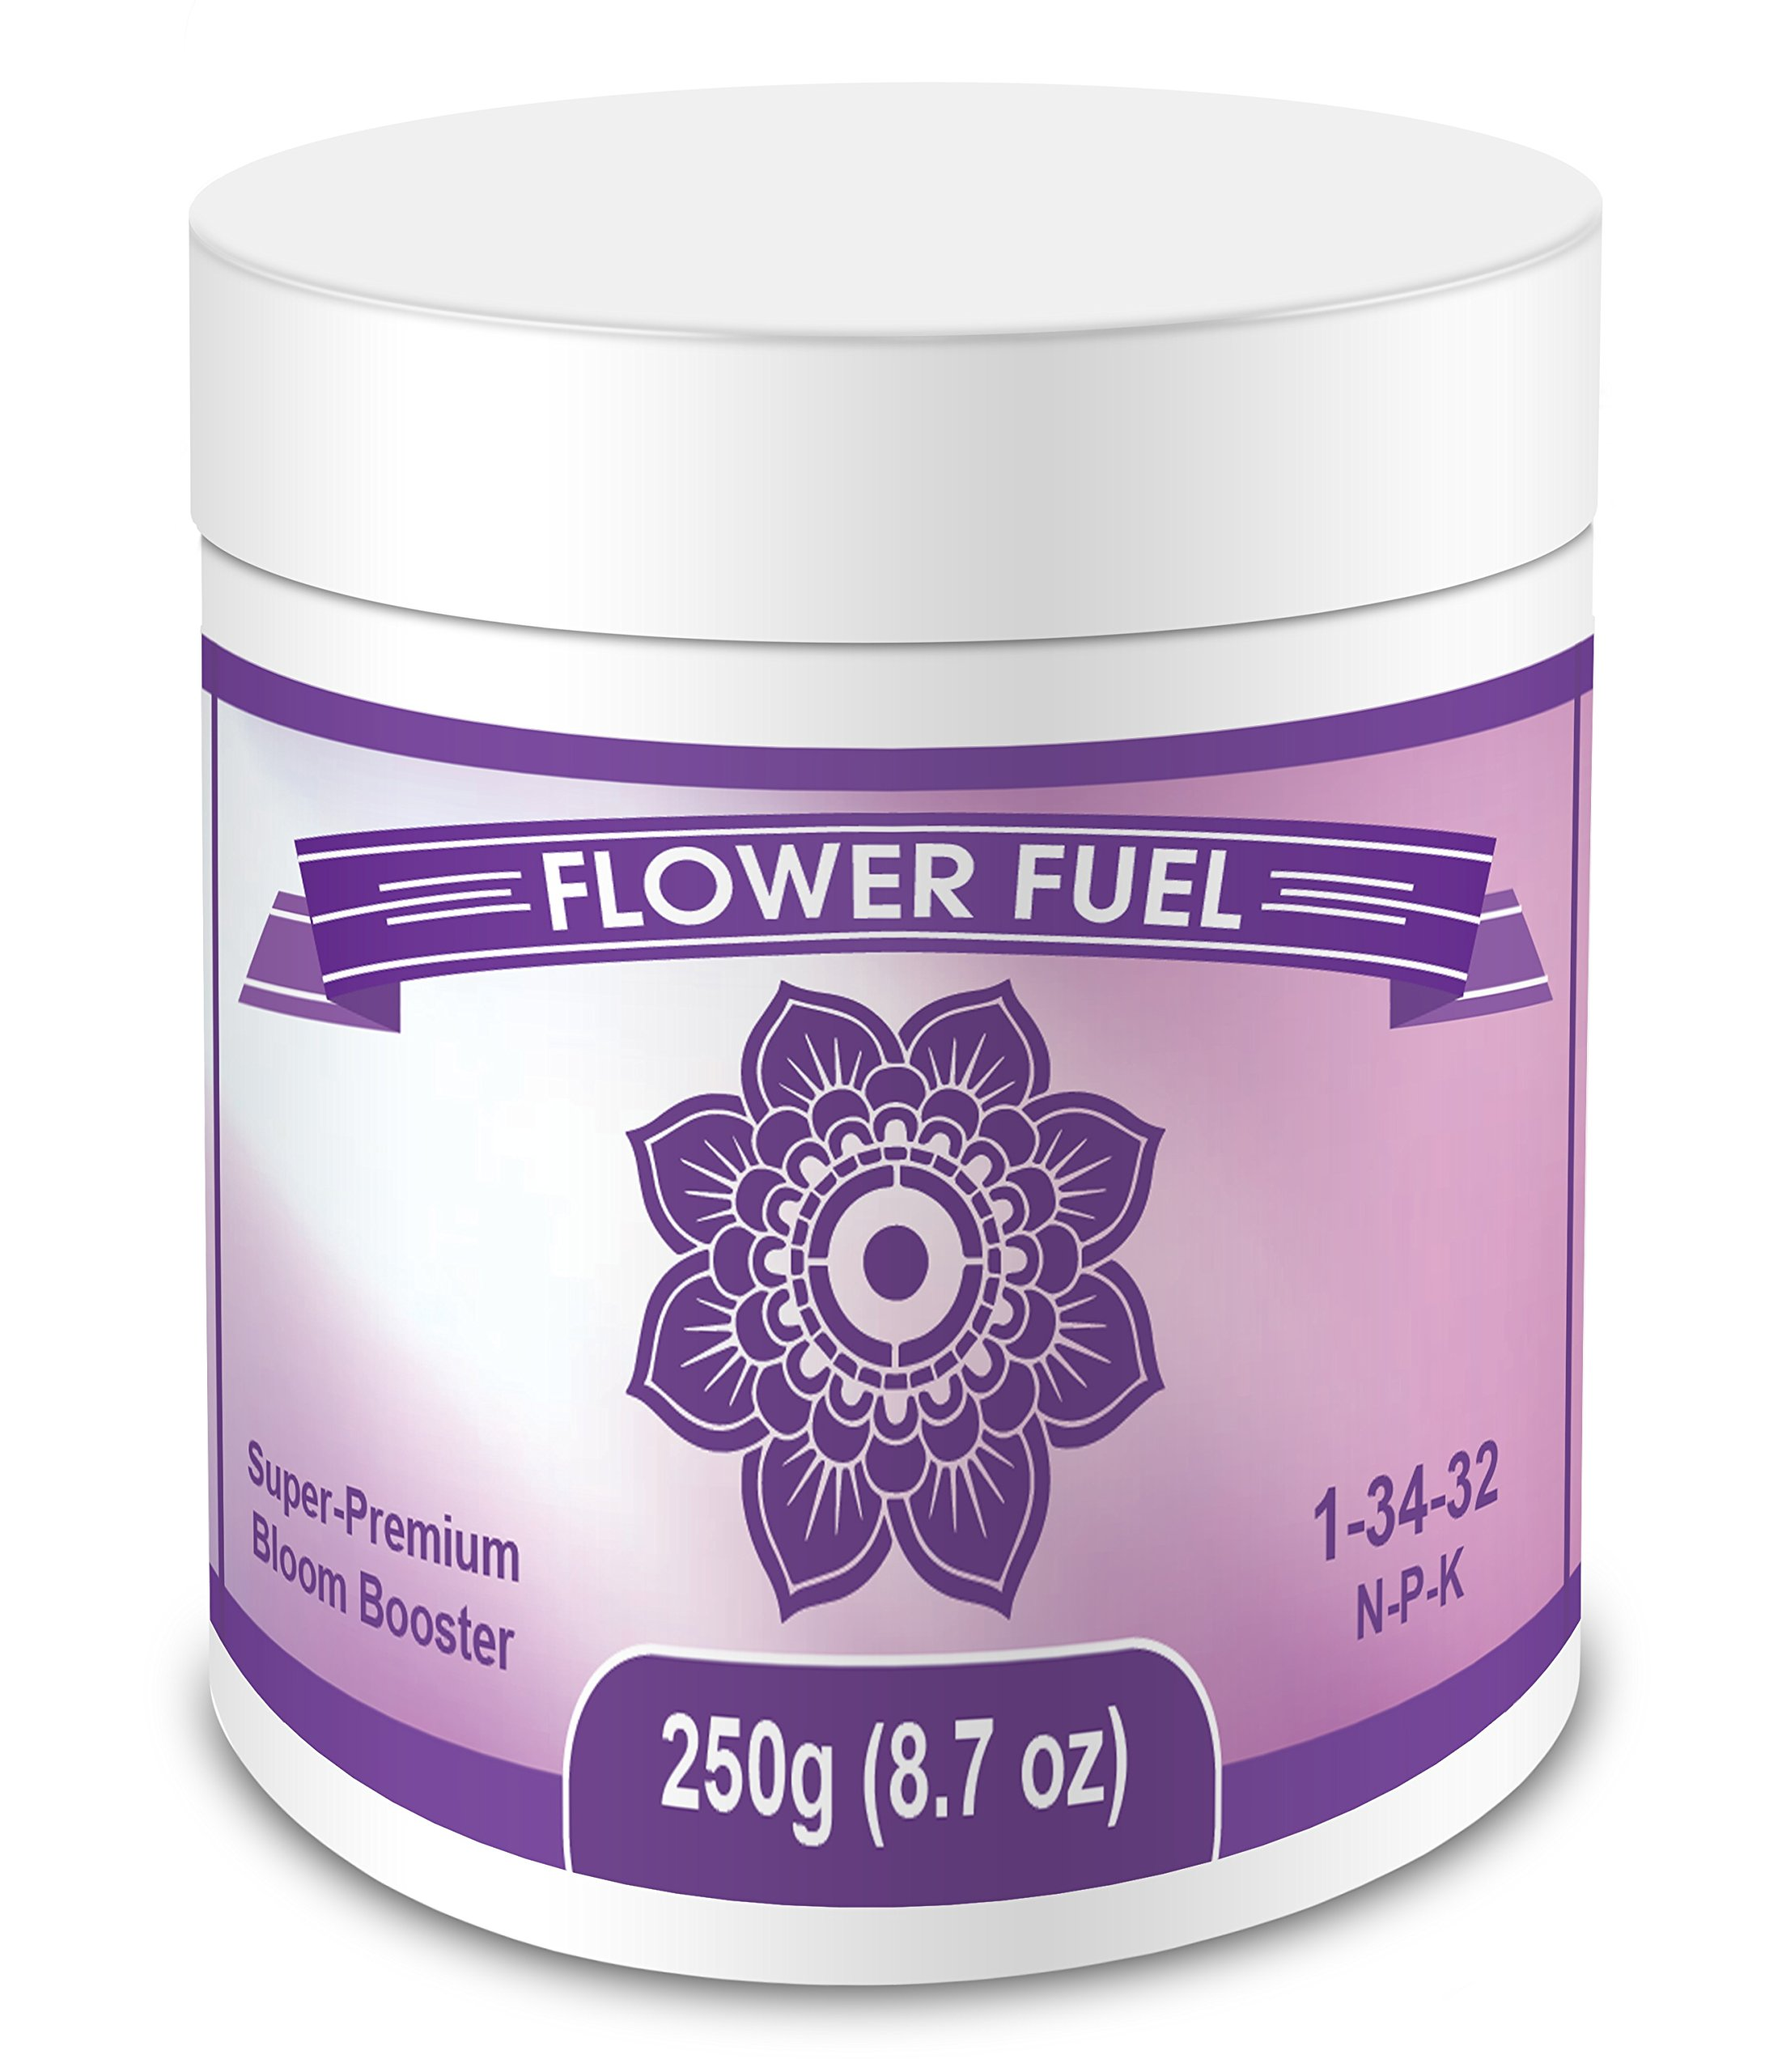 Flower Fuel 1-34-32, 250g - The Best Bloom Booster For Bigger, Heavier Harvests (250g) by Element